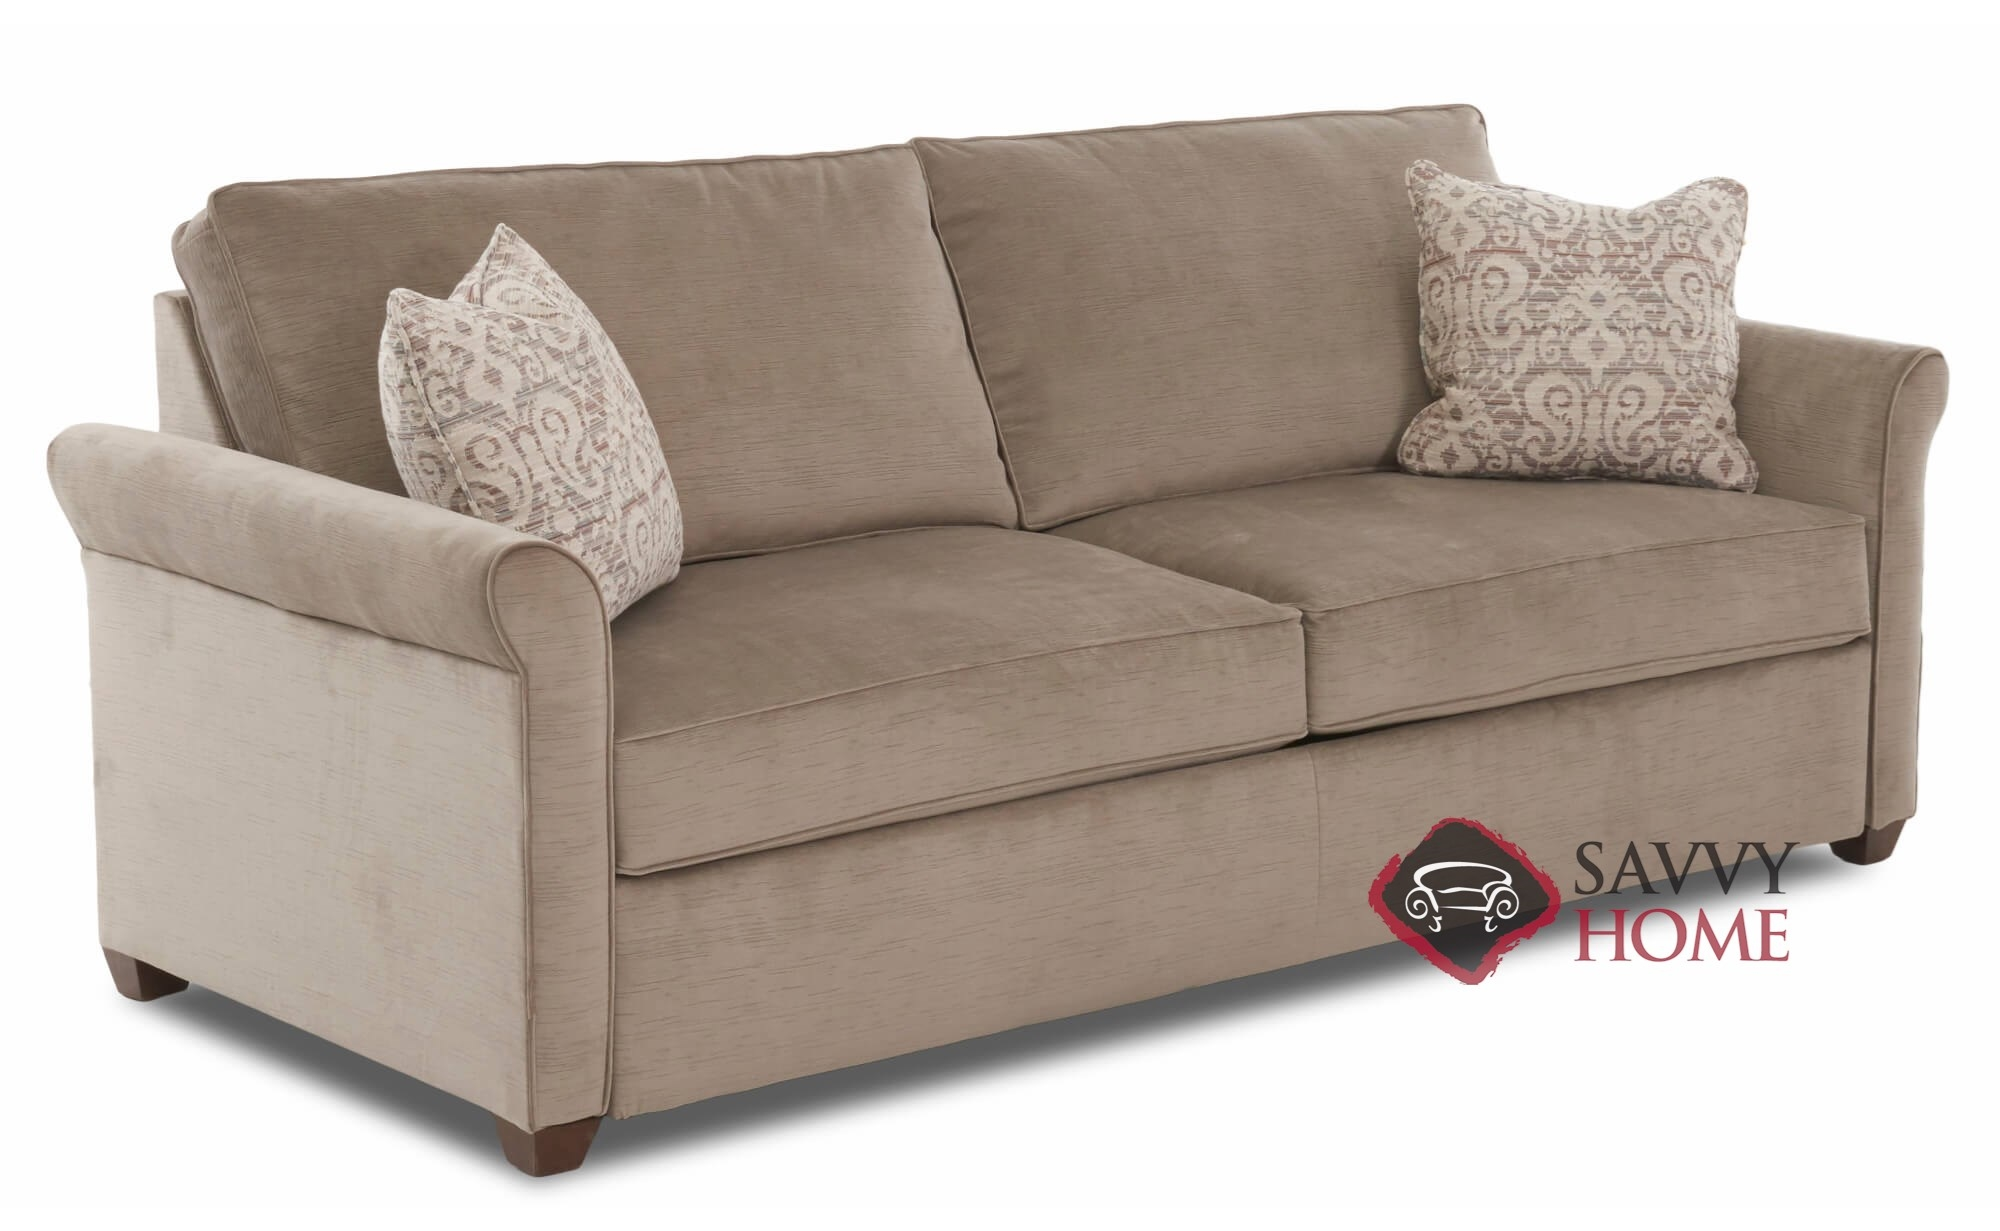 Fort Worth Sofa By Savvy